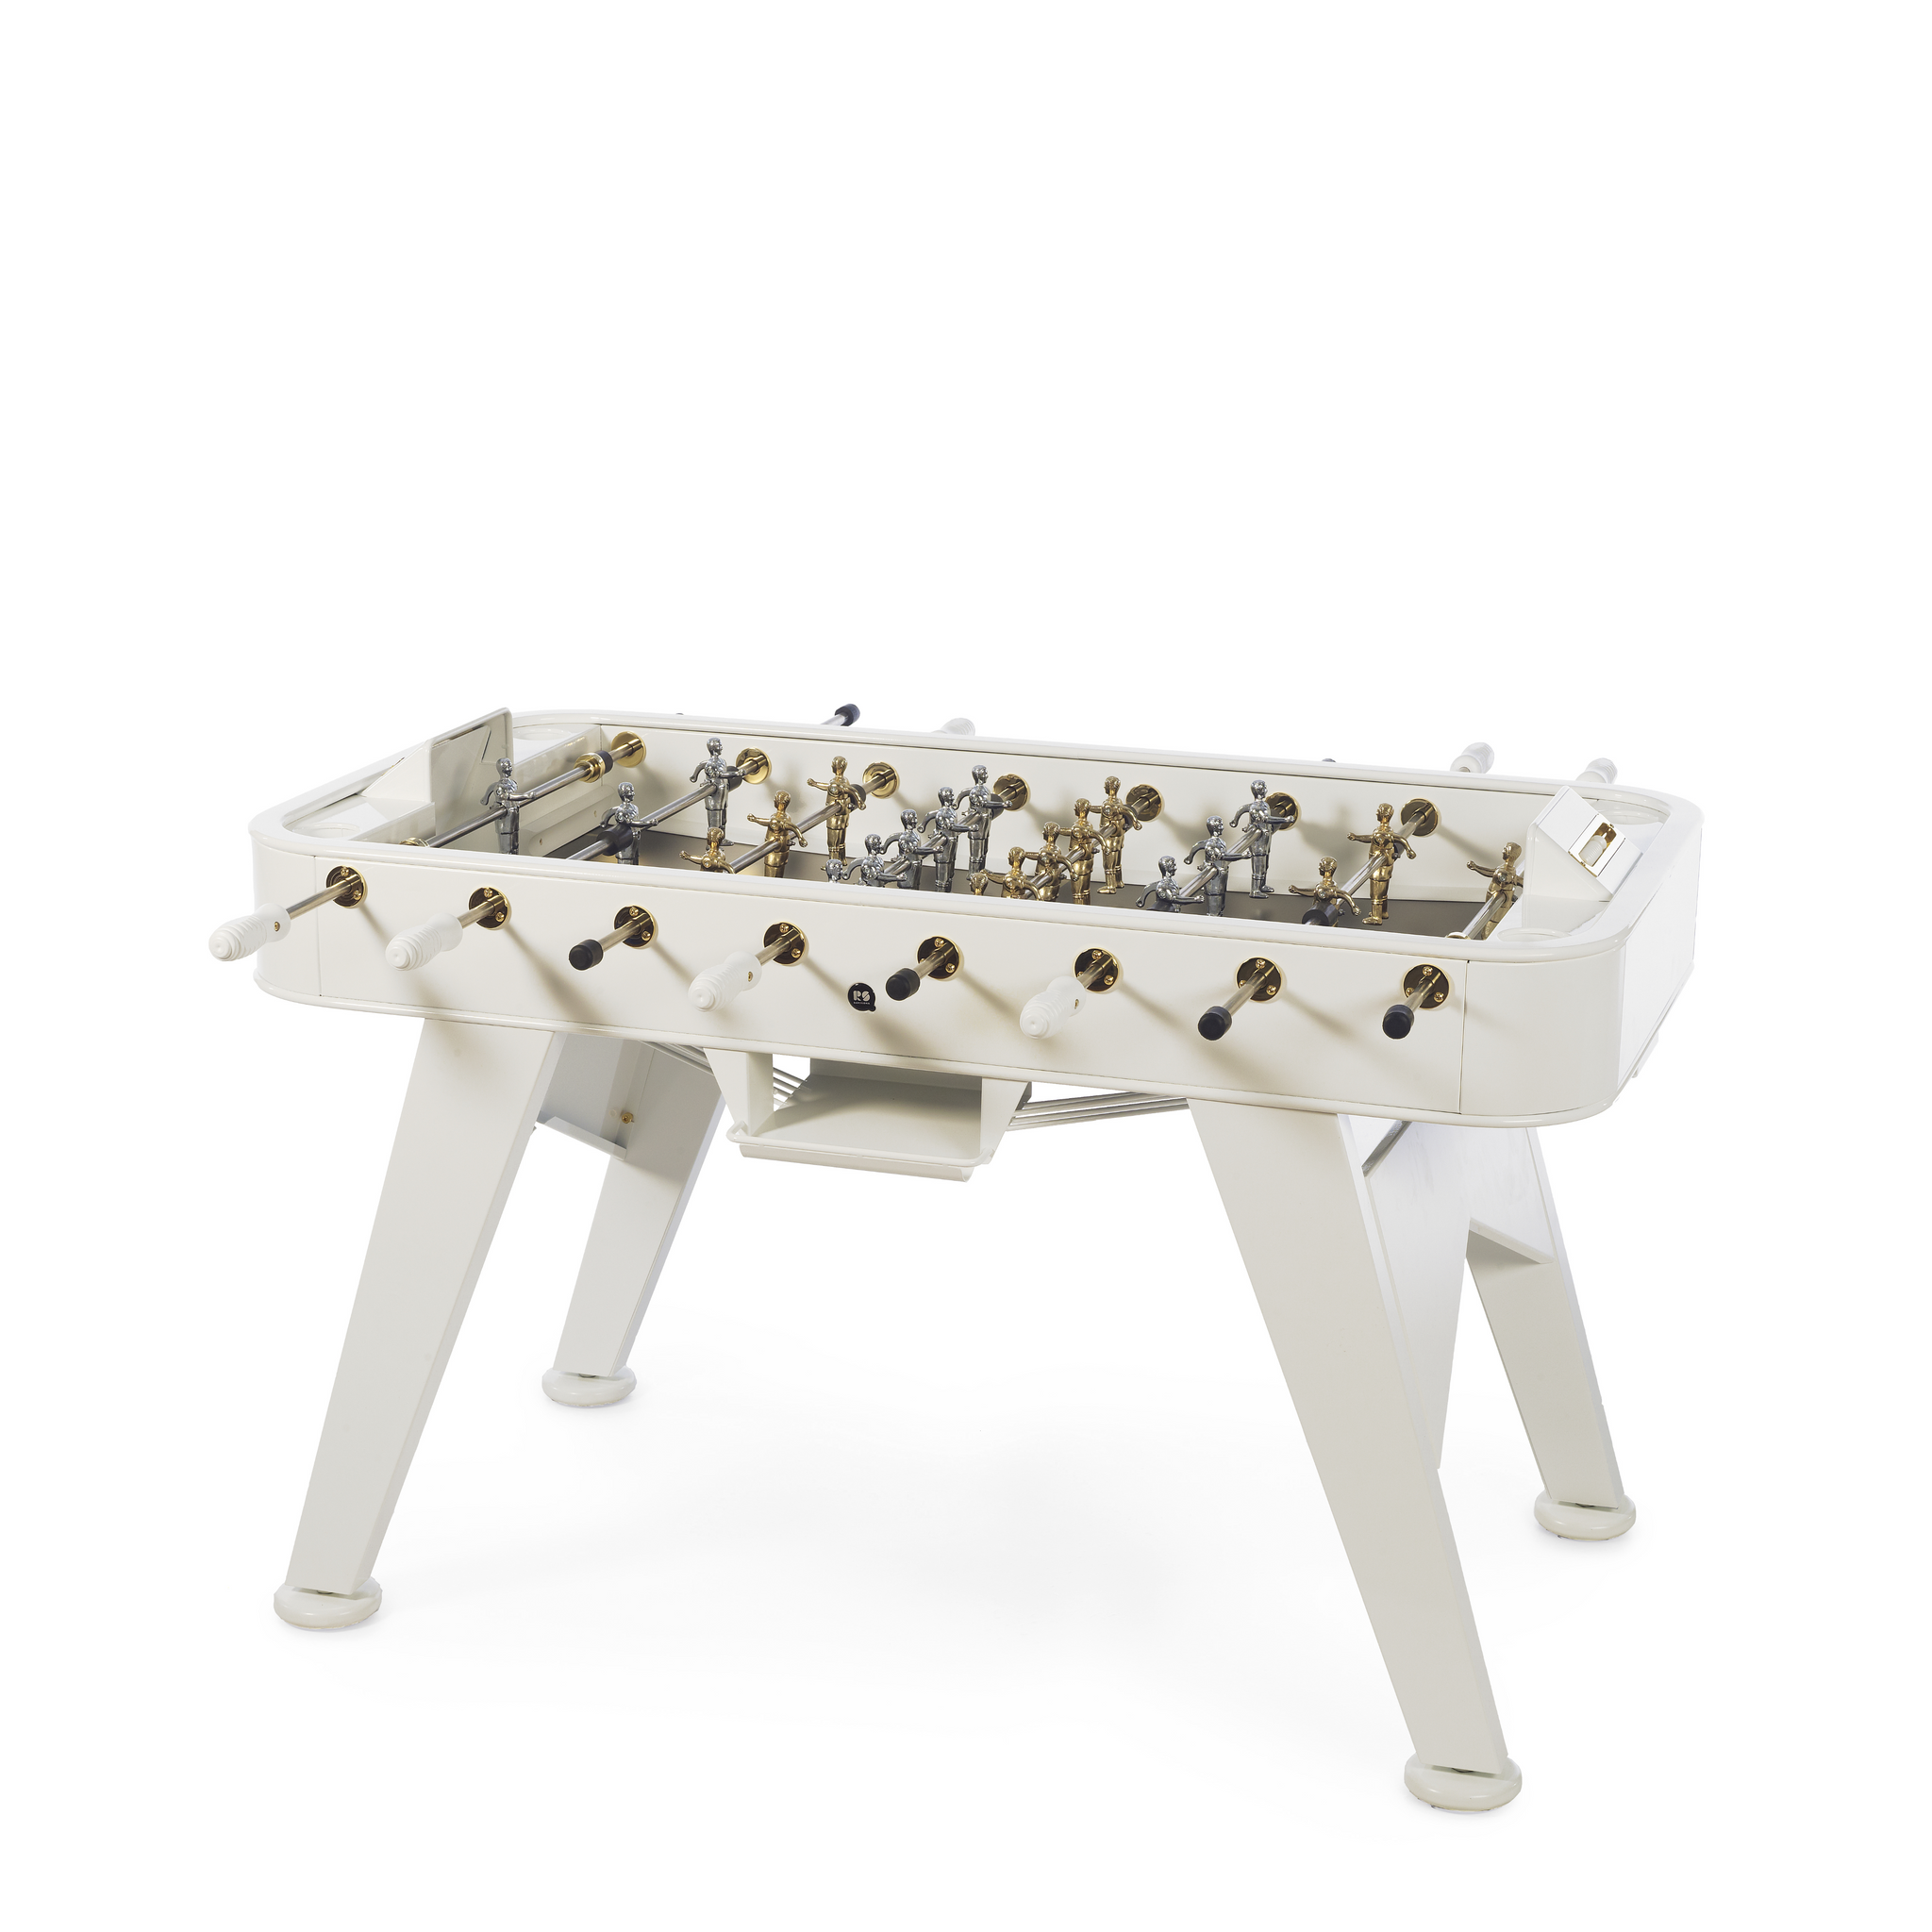 RS2 Gold Edition Foosball Table in White